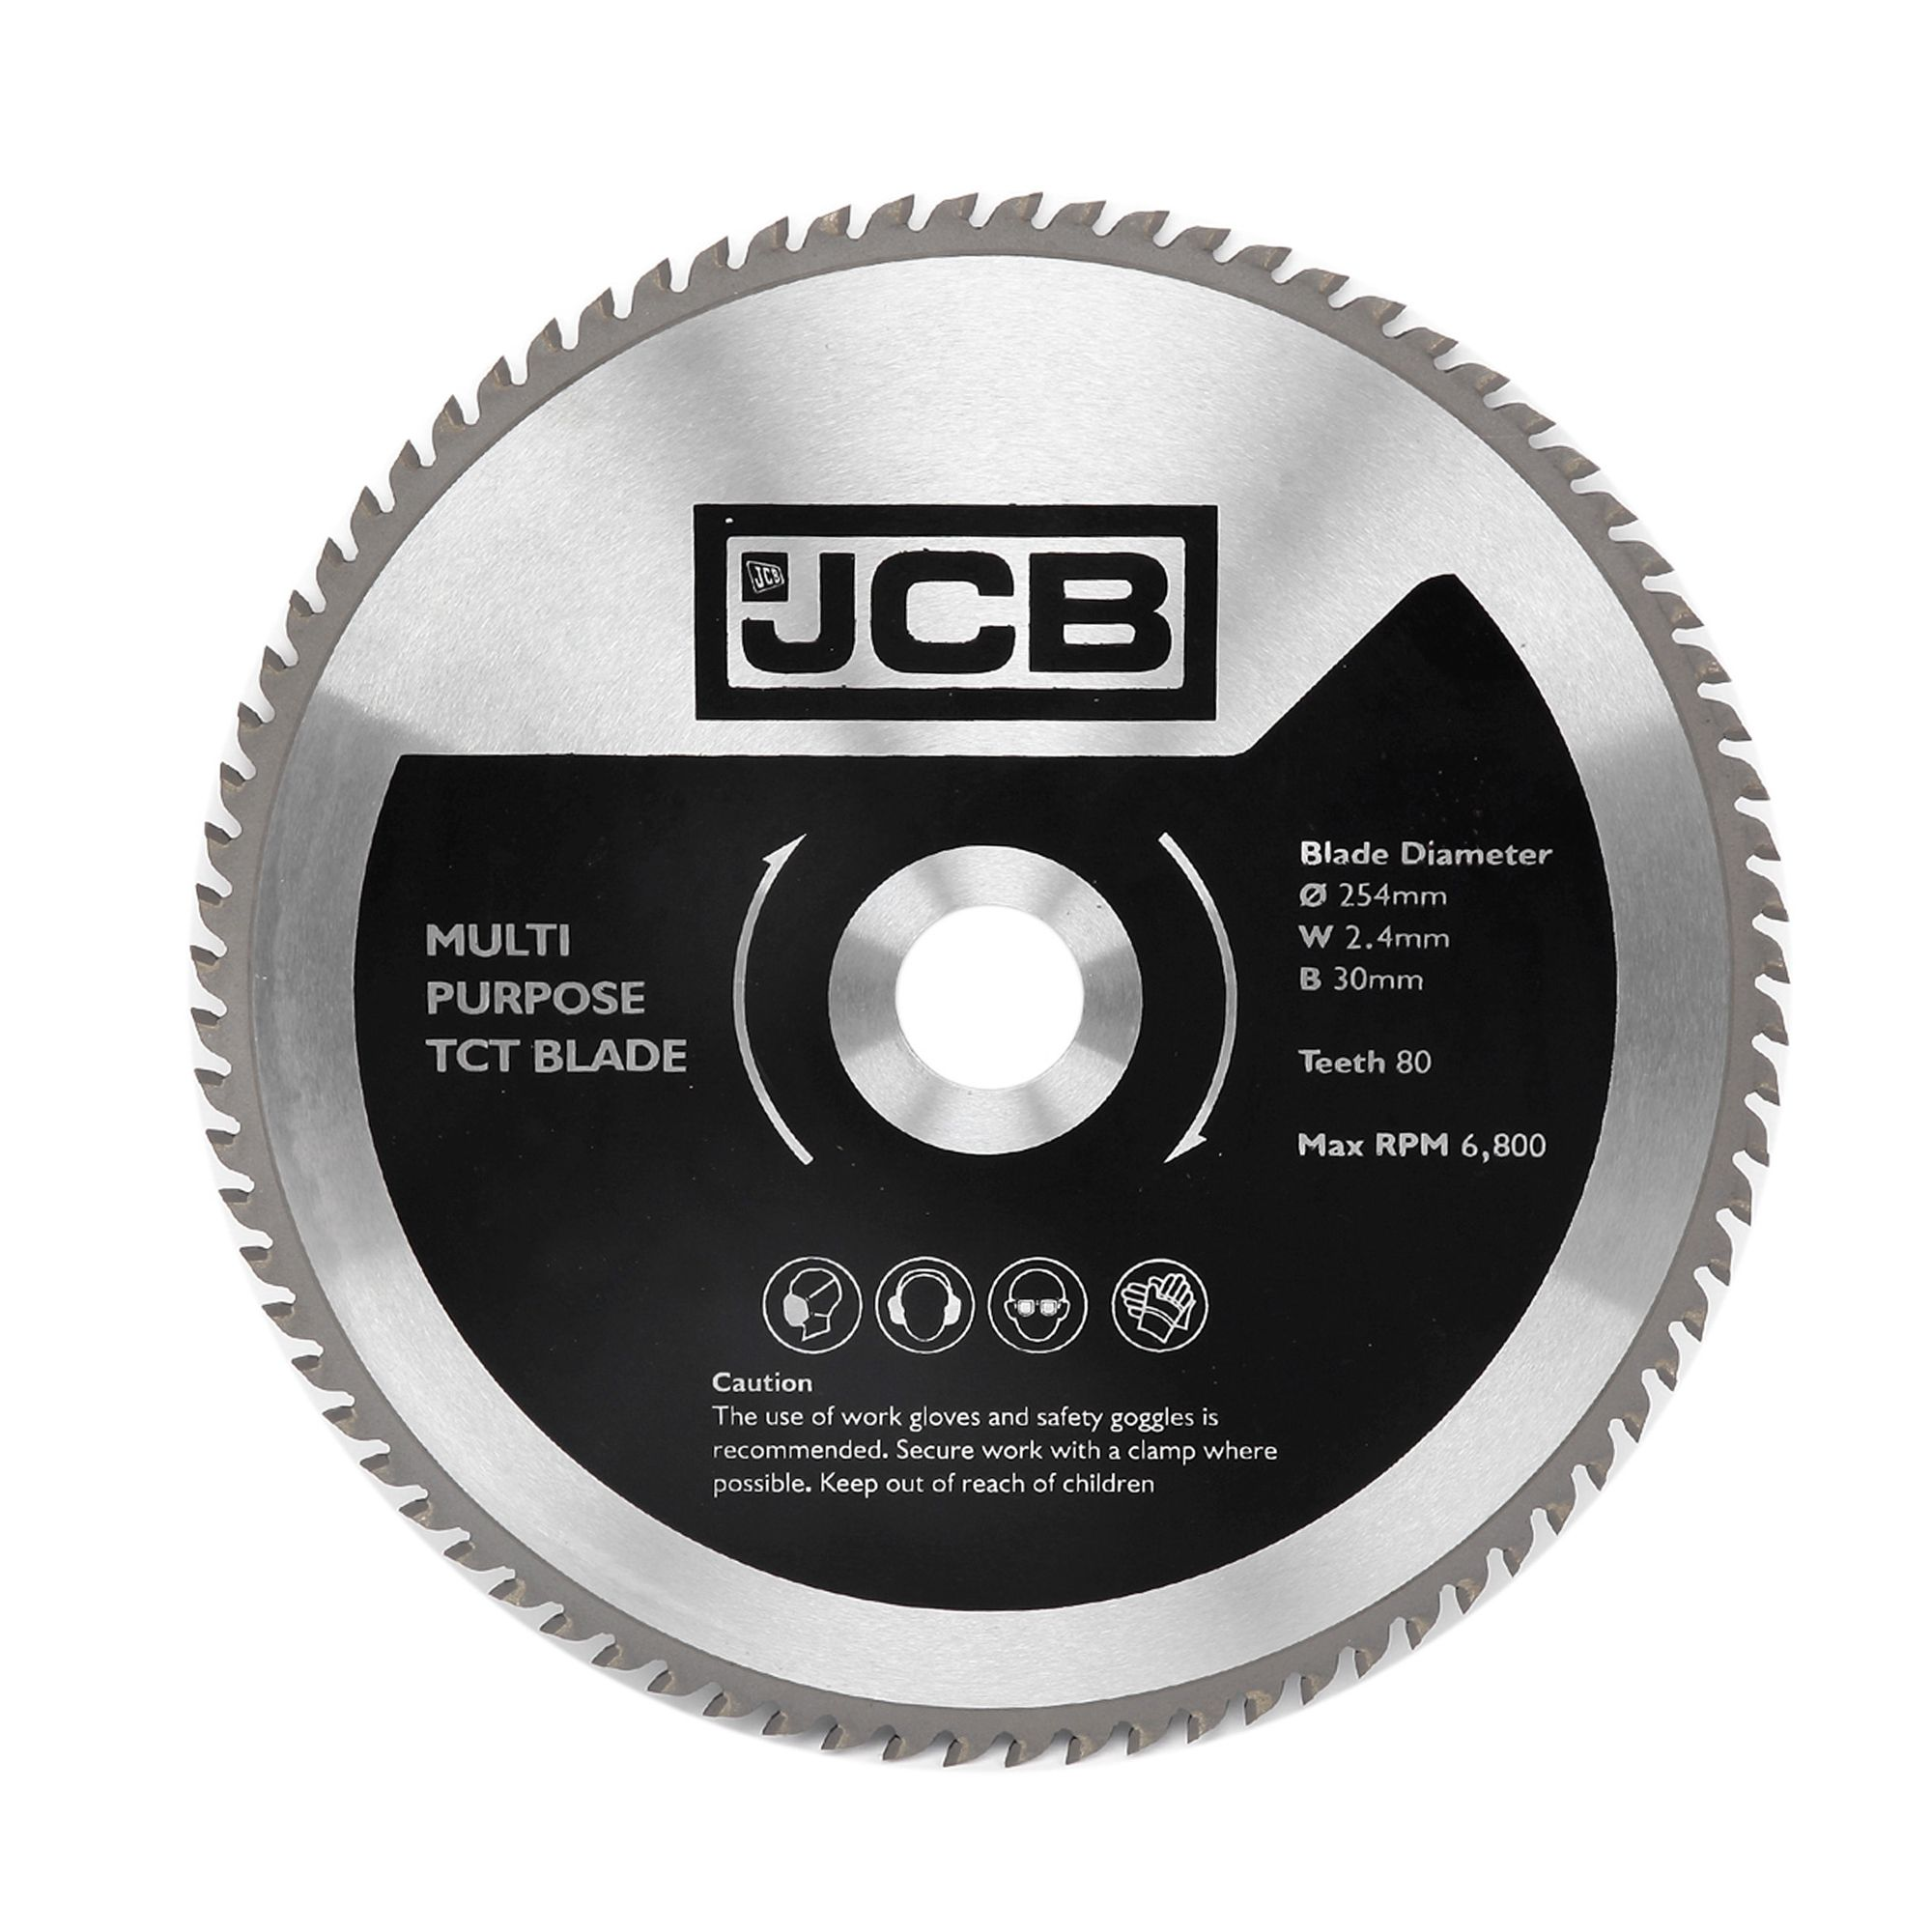 Jcb 80t Tct Blade Dia 254mm Departments Tradepoint